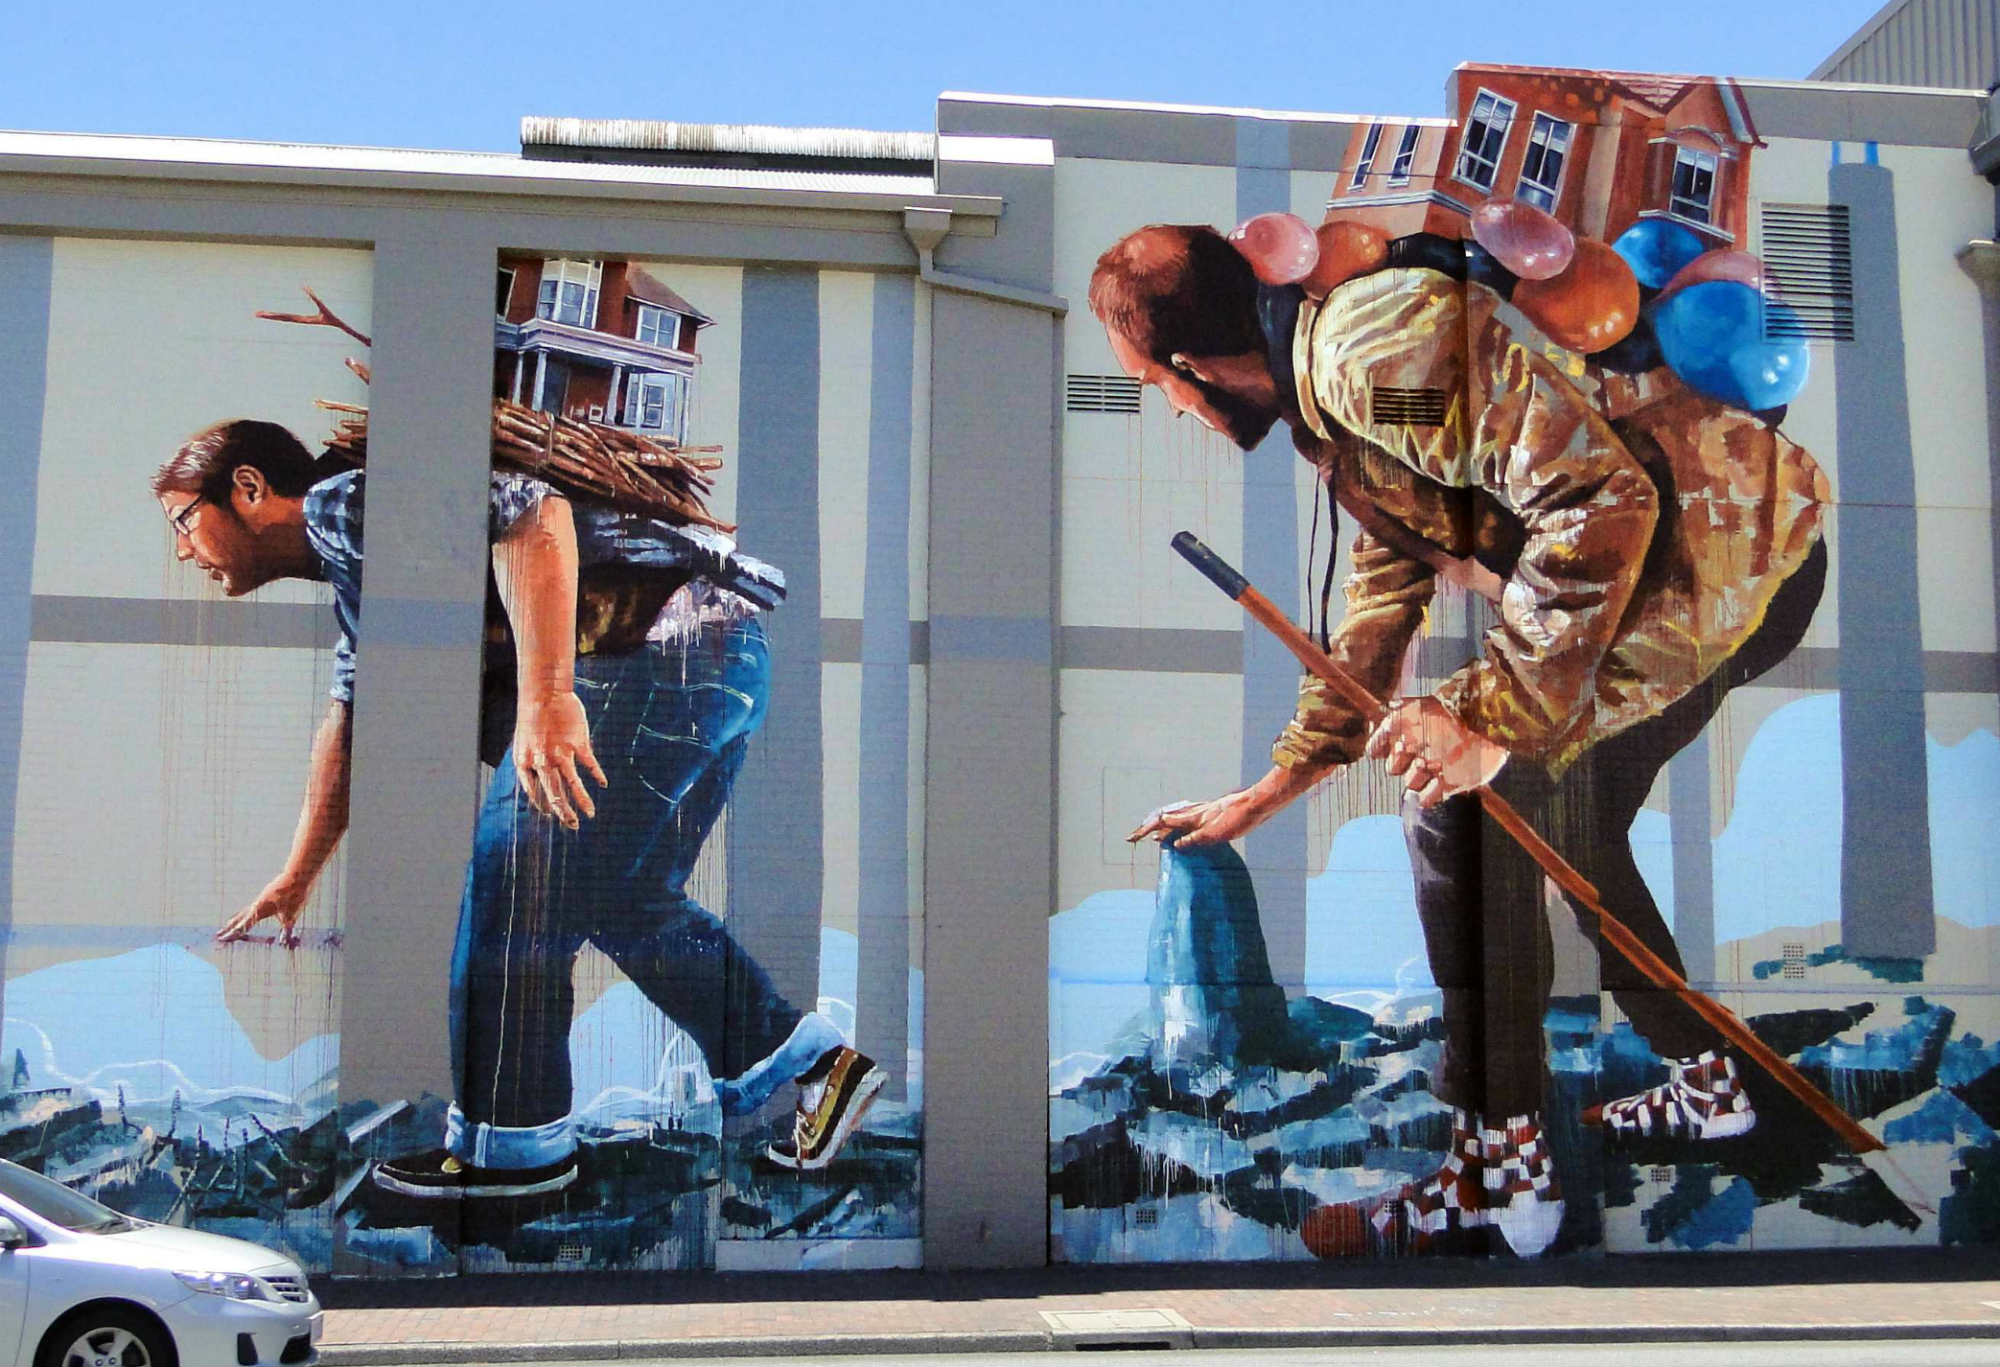 Powerful Street Art from Fintan Magee